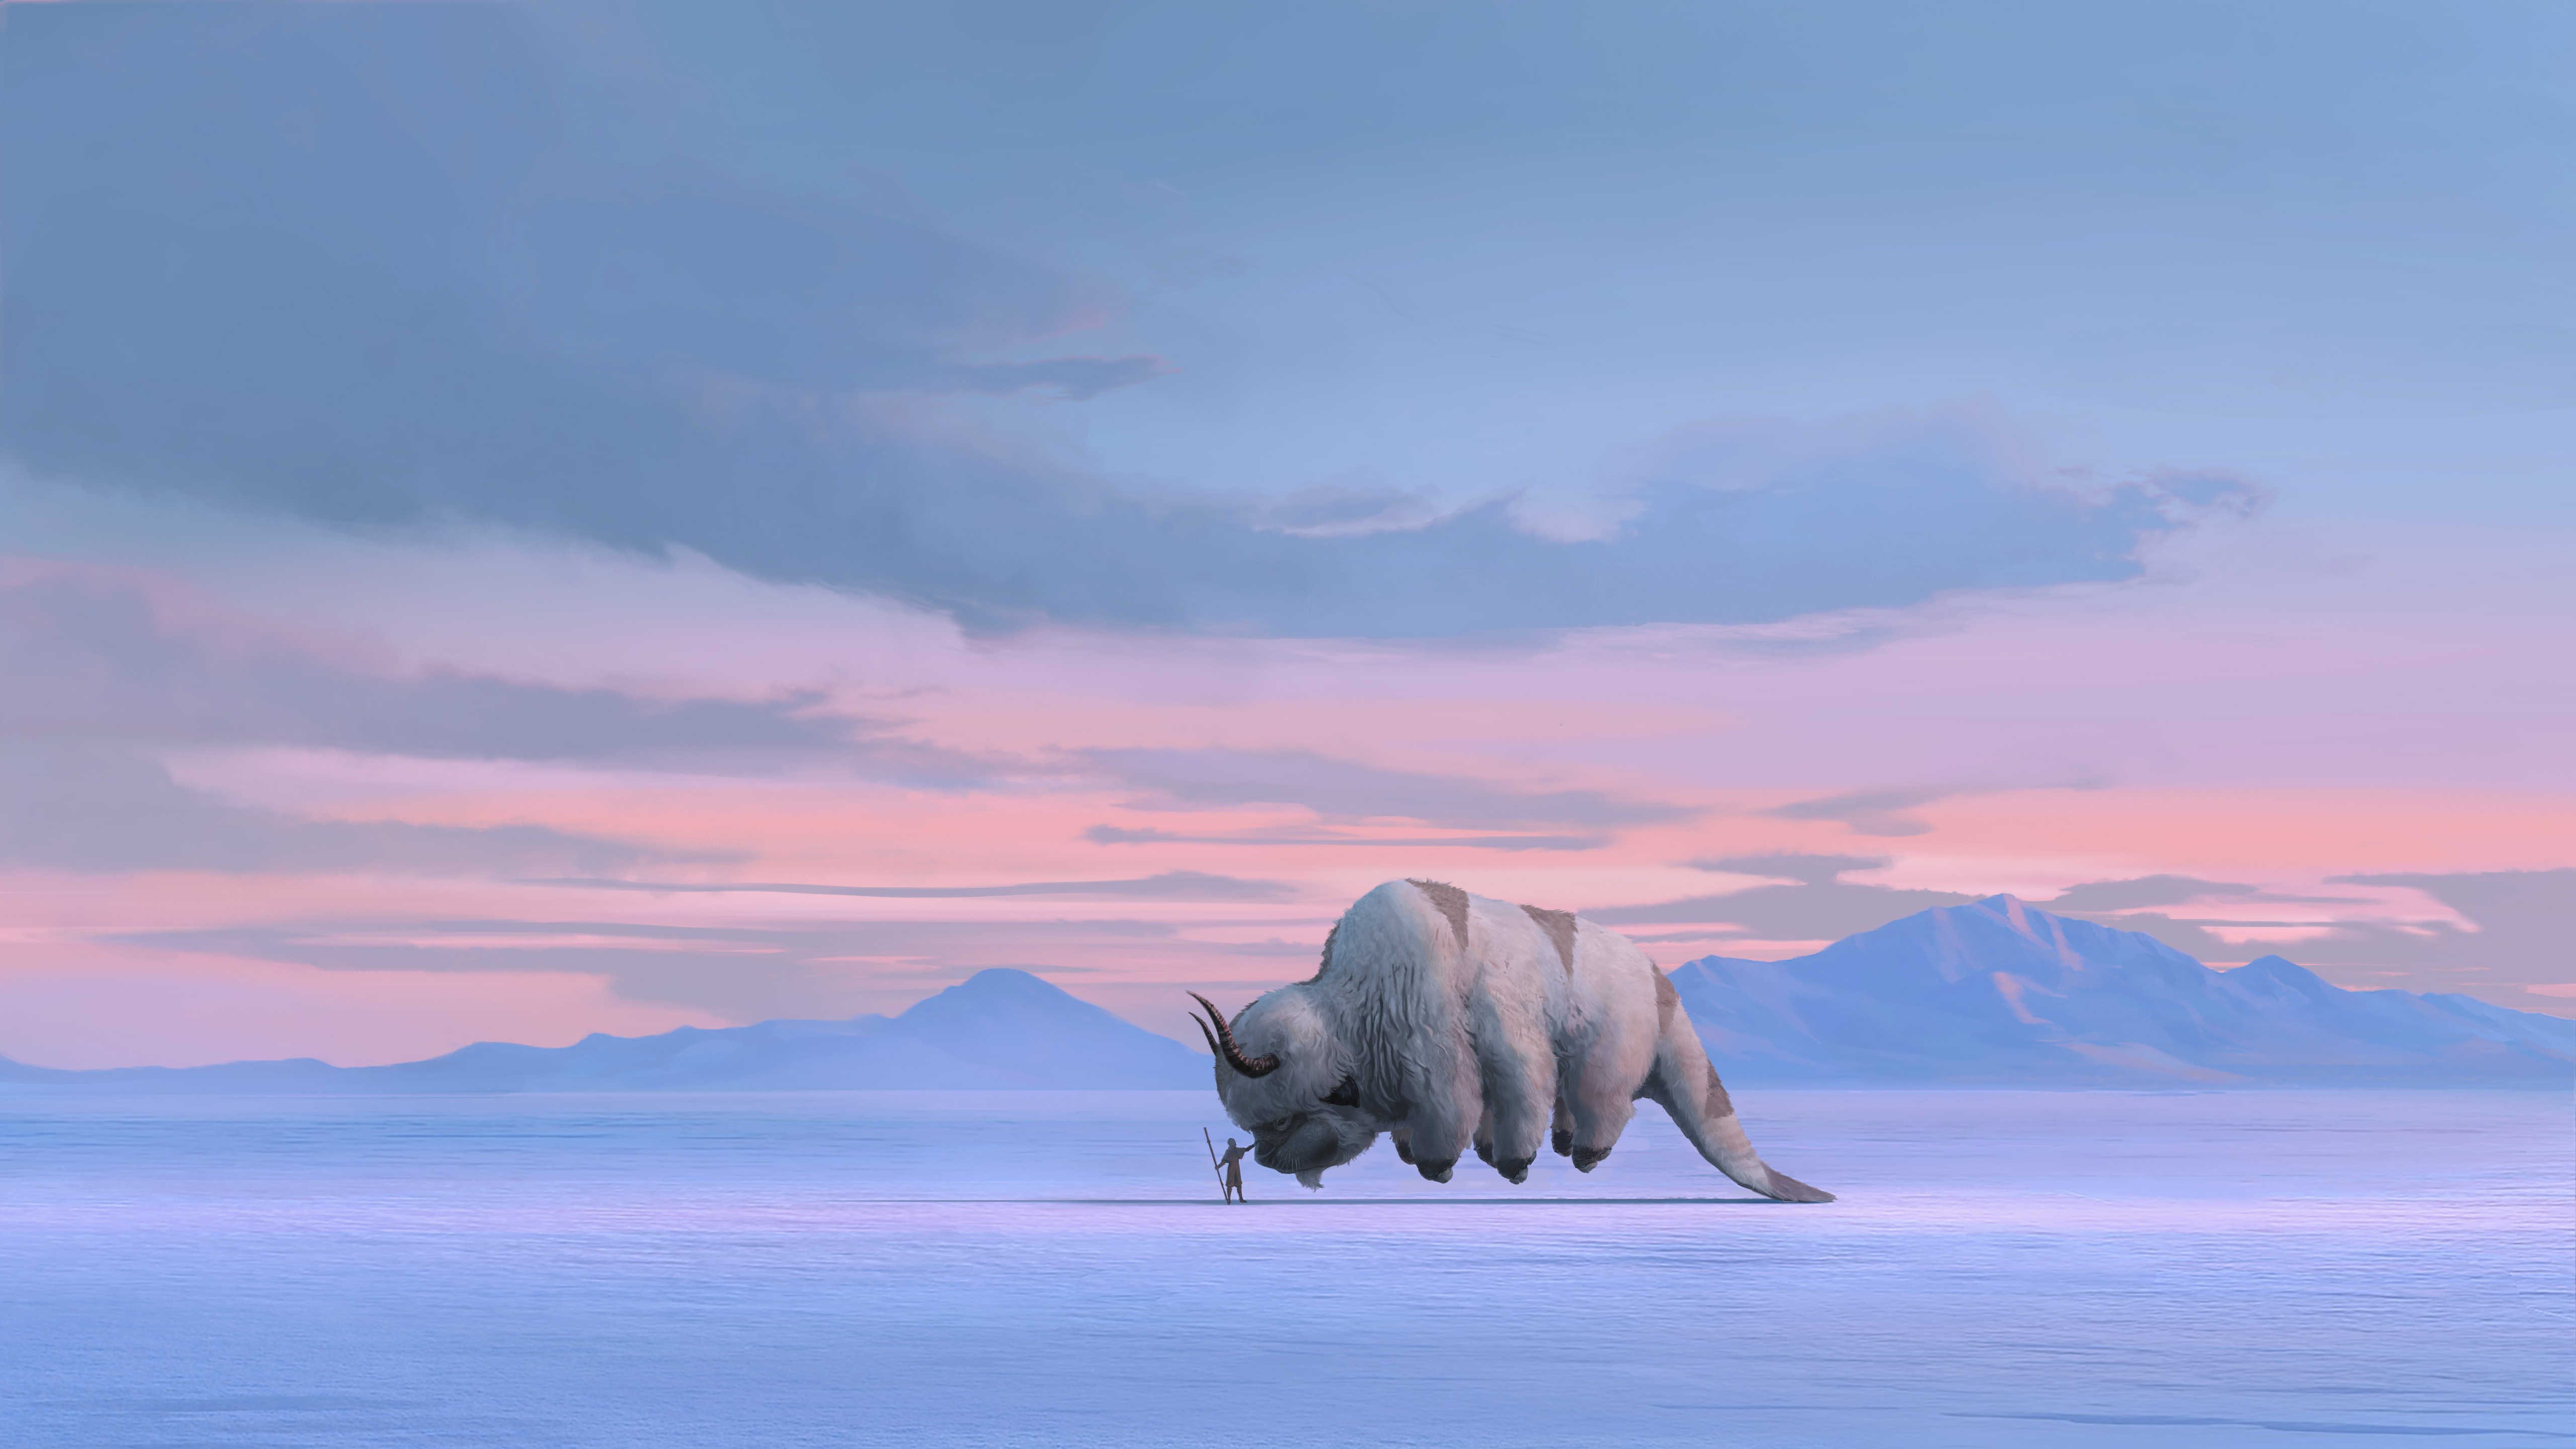 5120x2880 Avatar The Last Airbender 5k Hd 4k Wallpapers Images